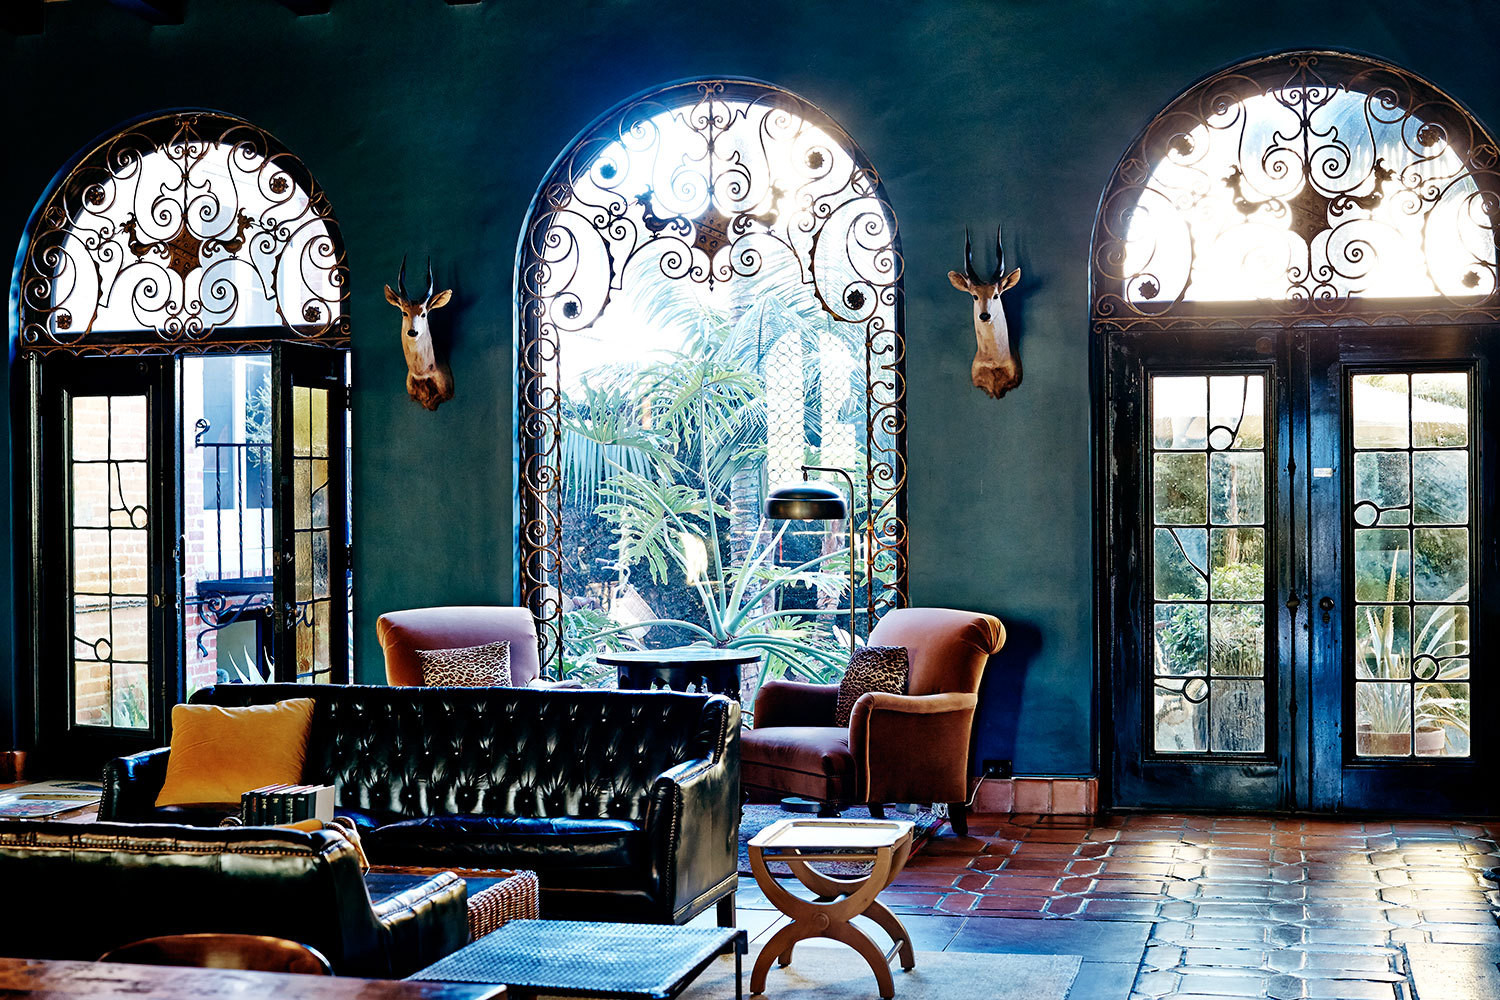 In the lobby a trio of imposing arched windows feature blown glass and wrought